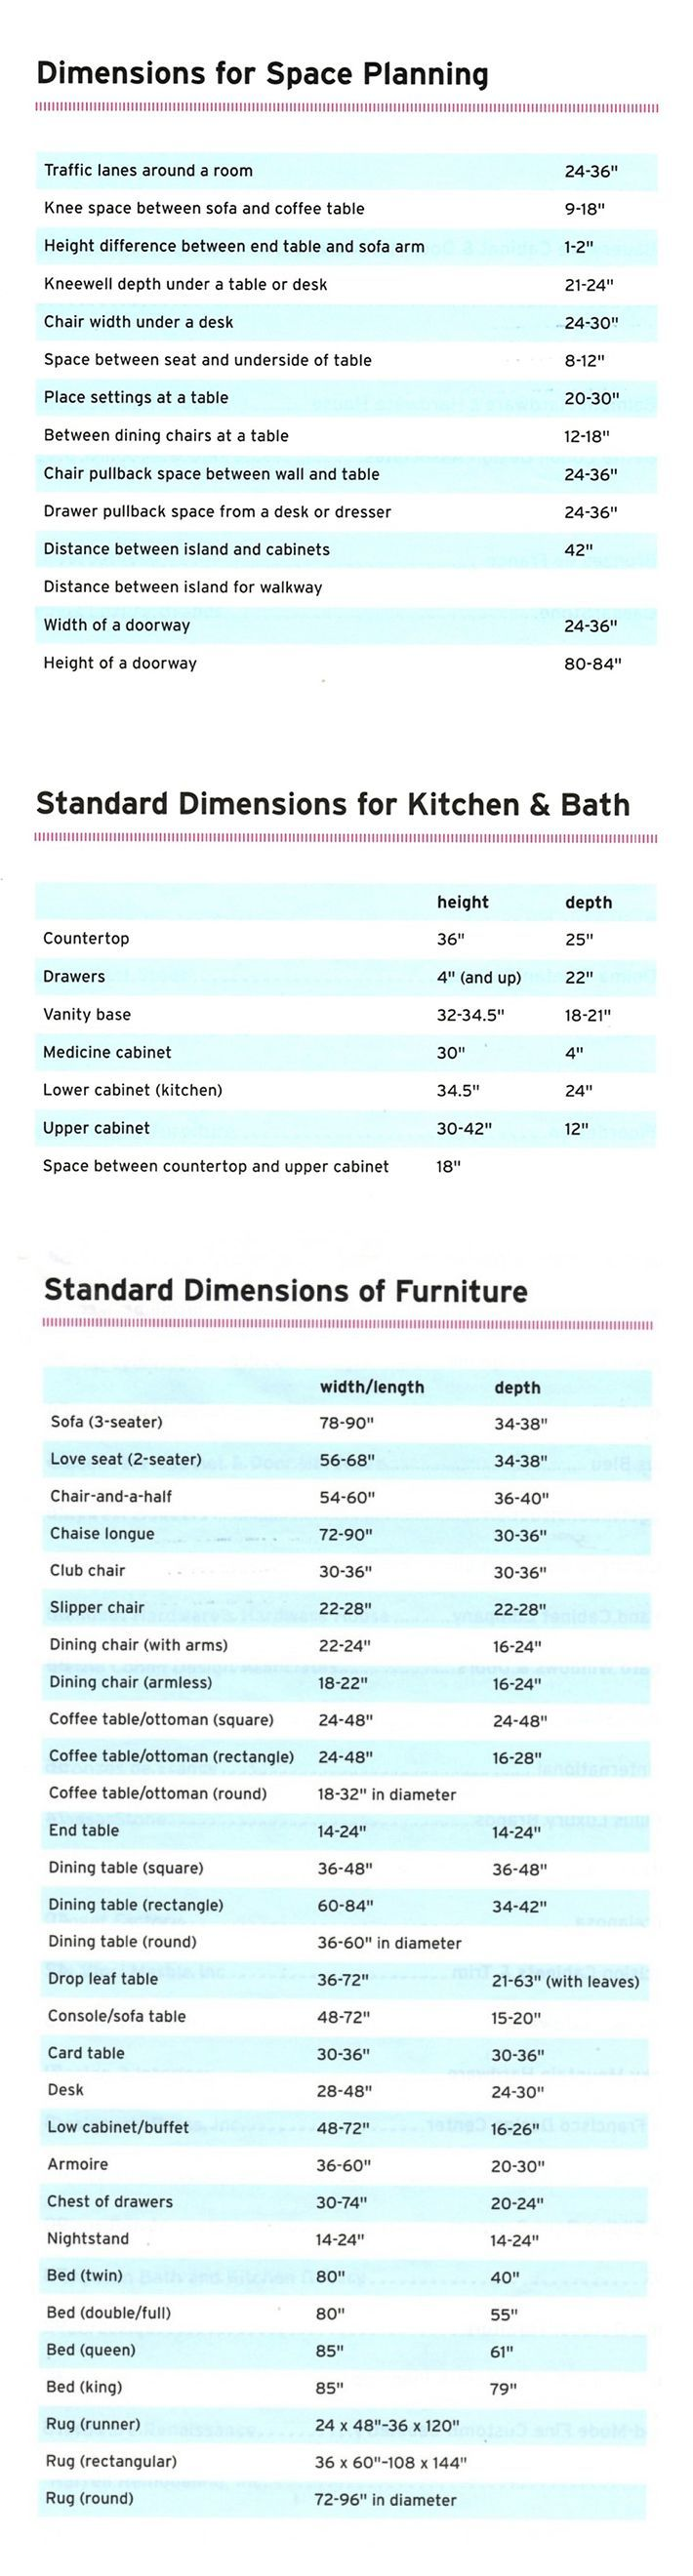 §130.43. Interior Design (8) (B)  plan for effective use of space zones and placement of furnishings #fs4703